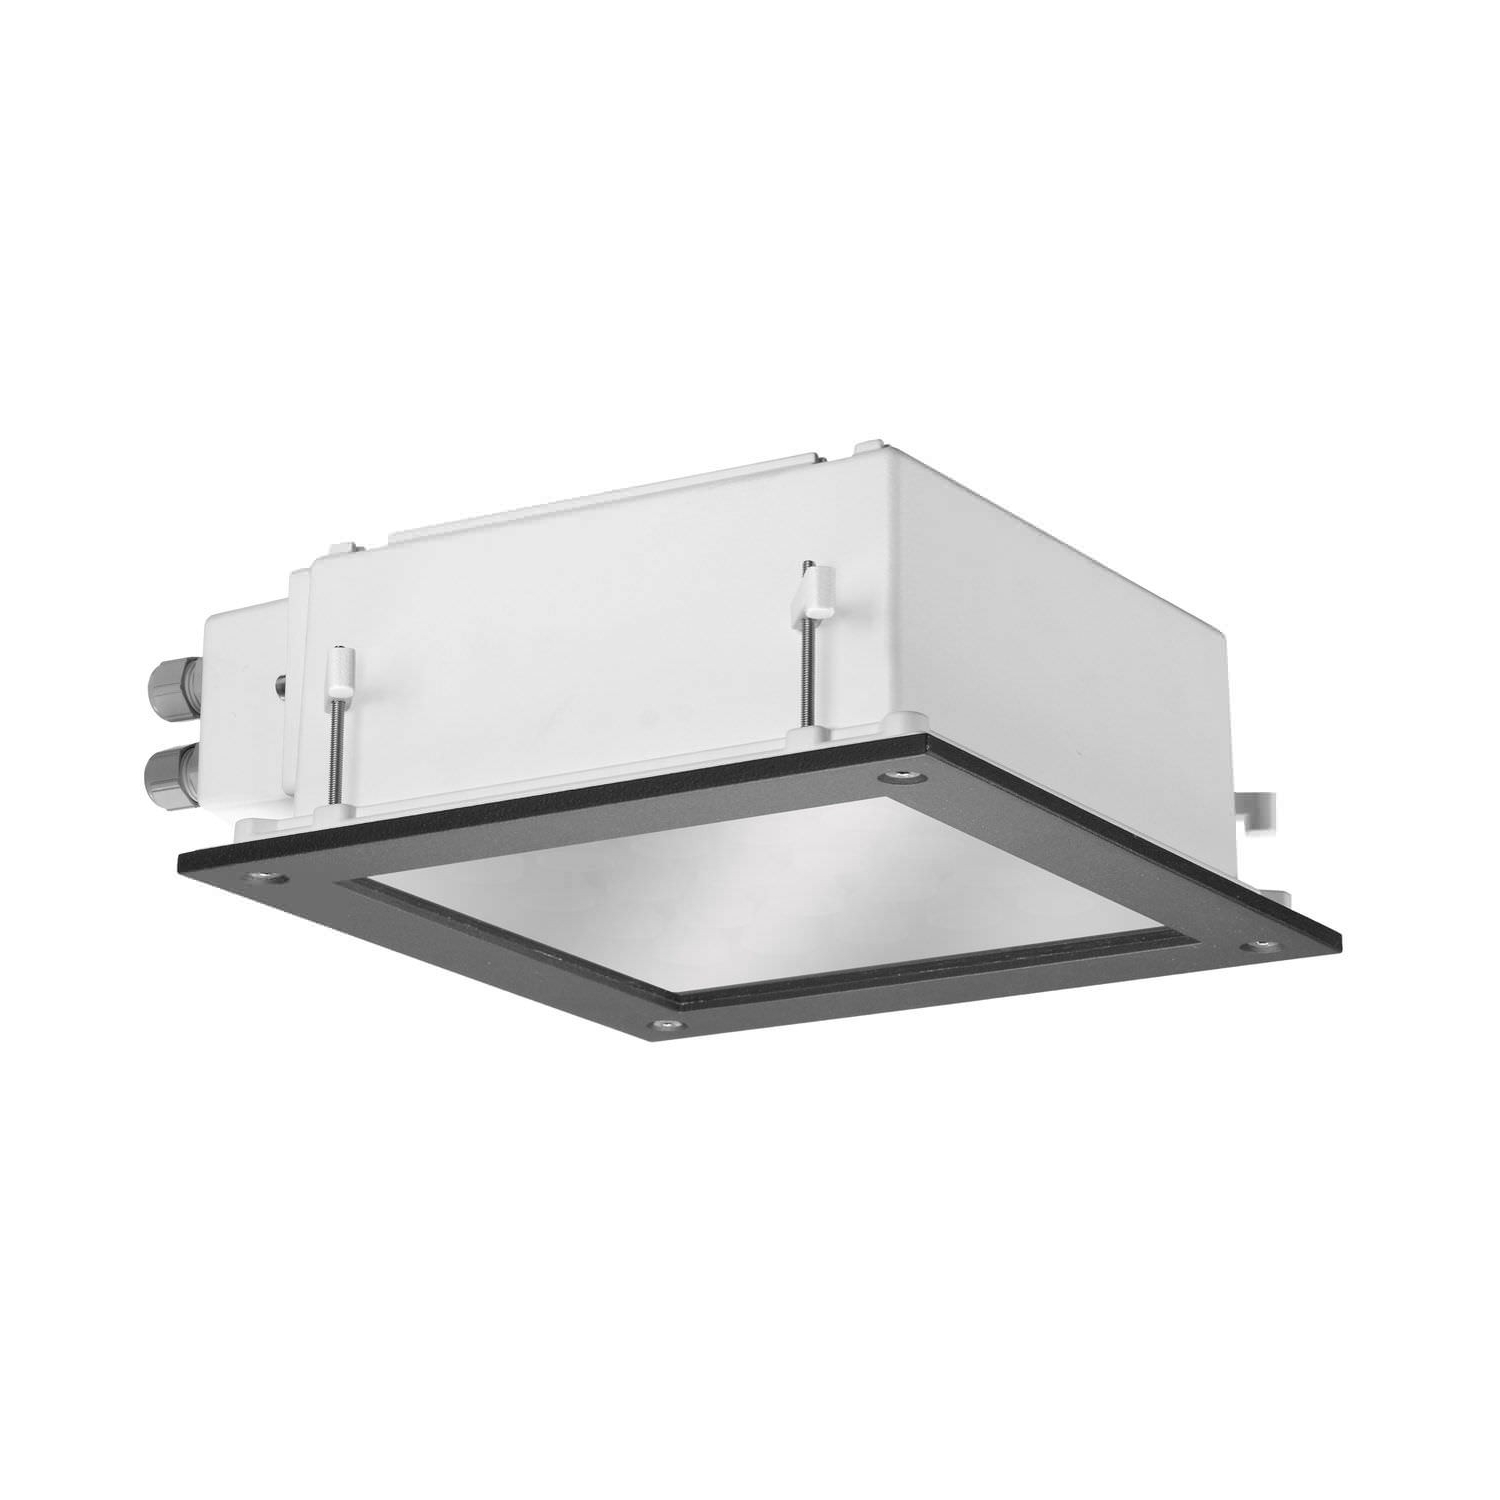 Most Recently Released Outdoor Ceiling Downlights Throughout Recessed Downlight For Outdoor Use Hid Compact Fluorescent Unique (View 5 of 20)